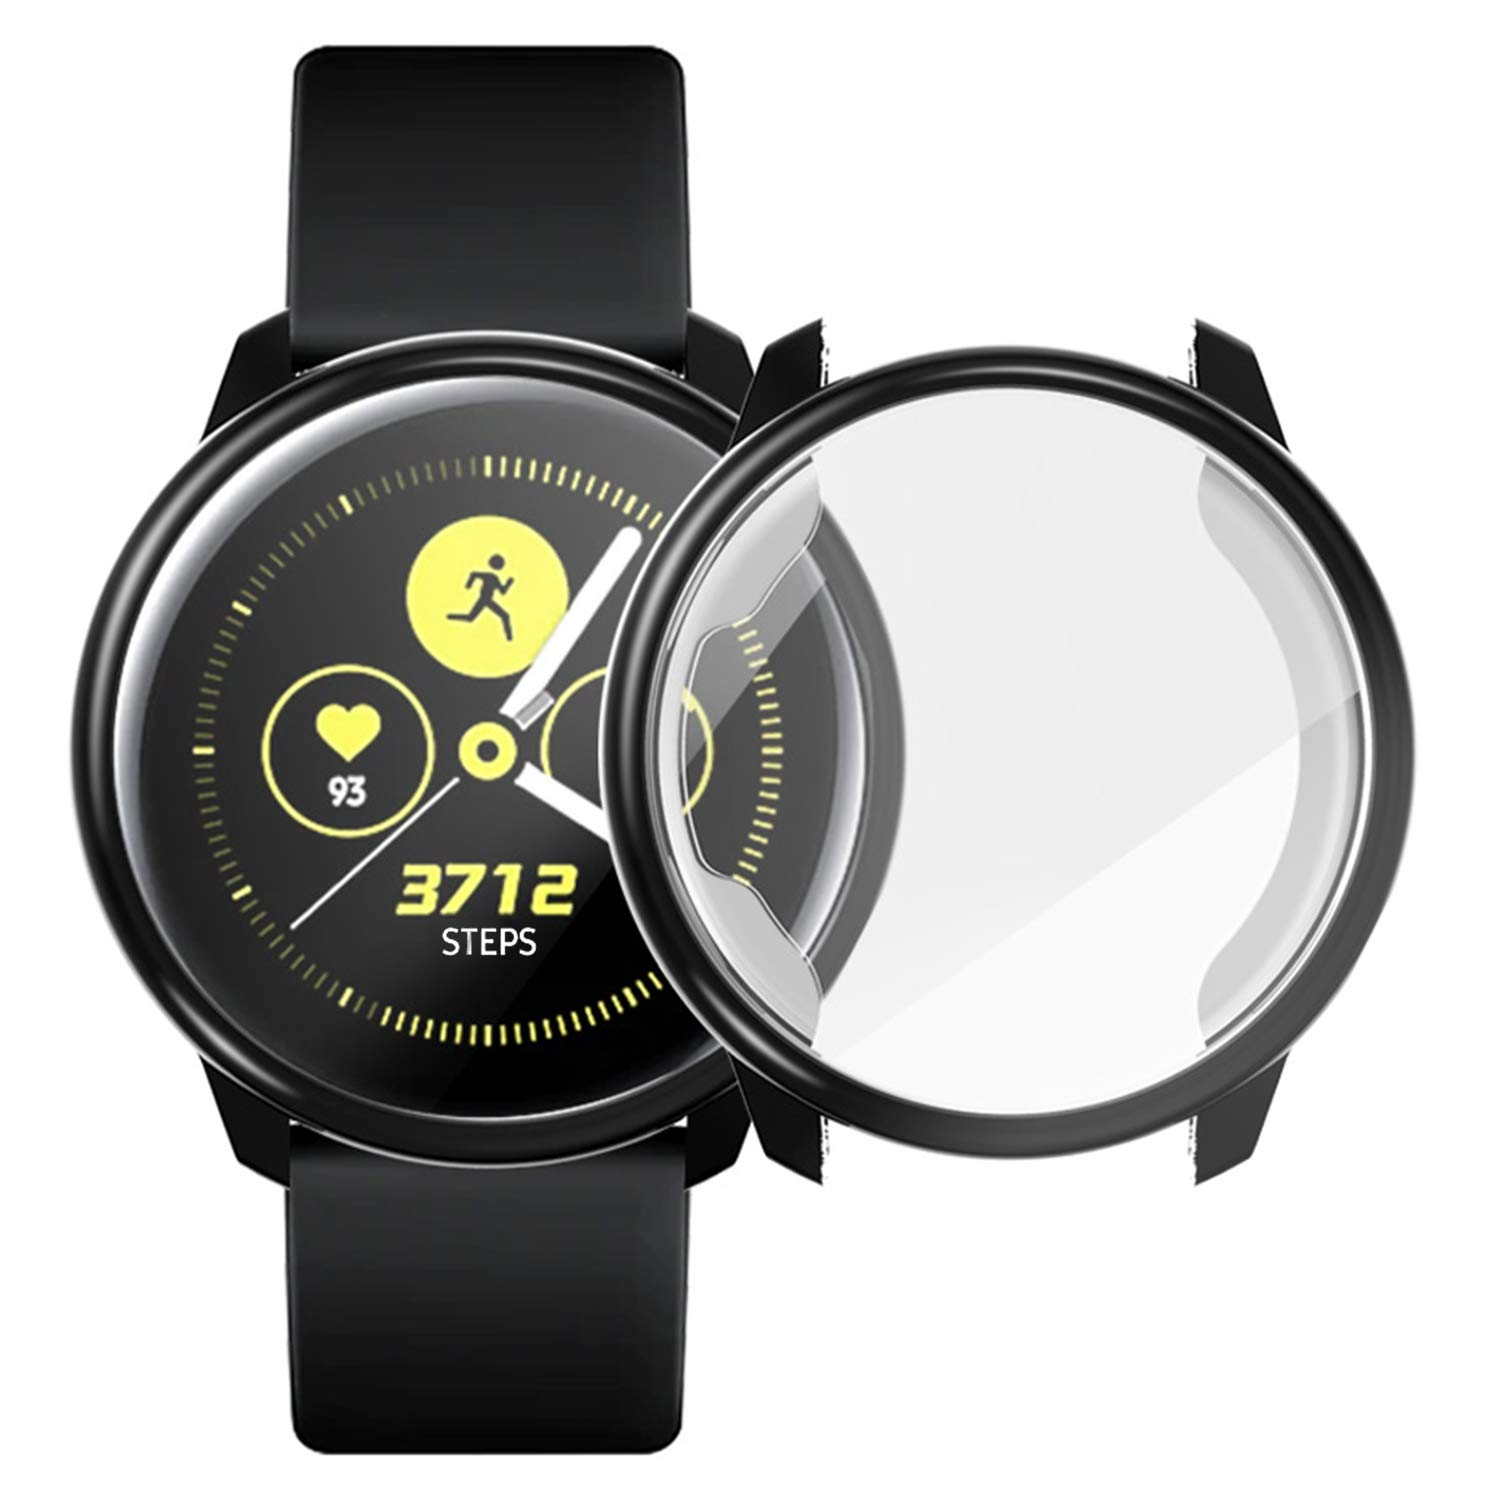 Screen Protector Clear Case for Samsung Galaxy Watch Active 40mm, All-Around TPU Anti-Scratch Flexible Case Soft Protective Bumper Cover for Samsung ...